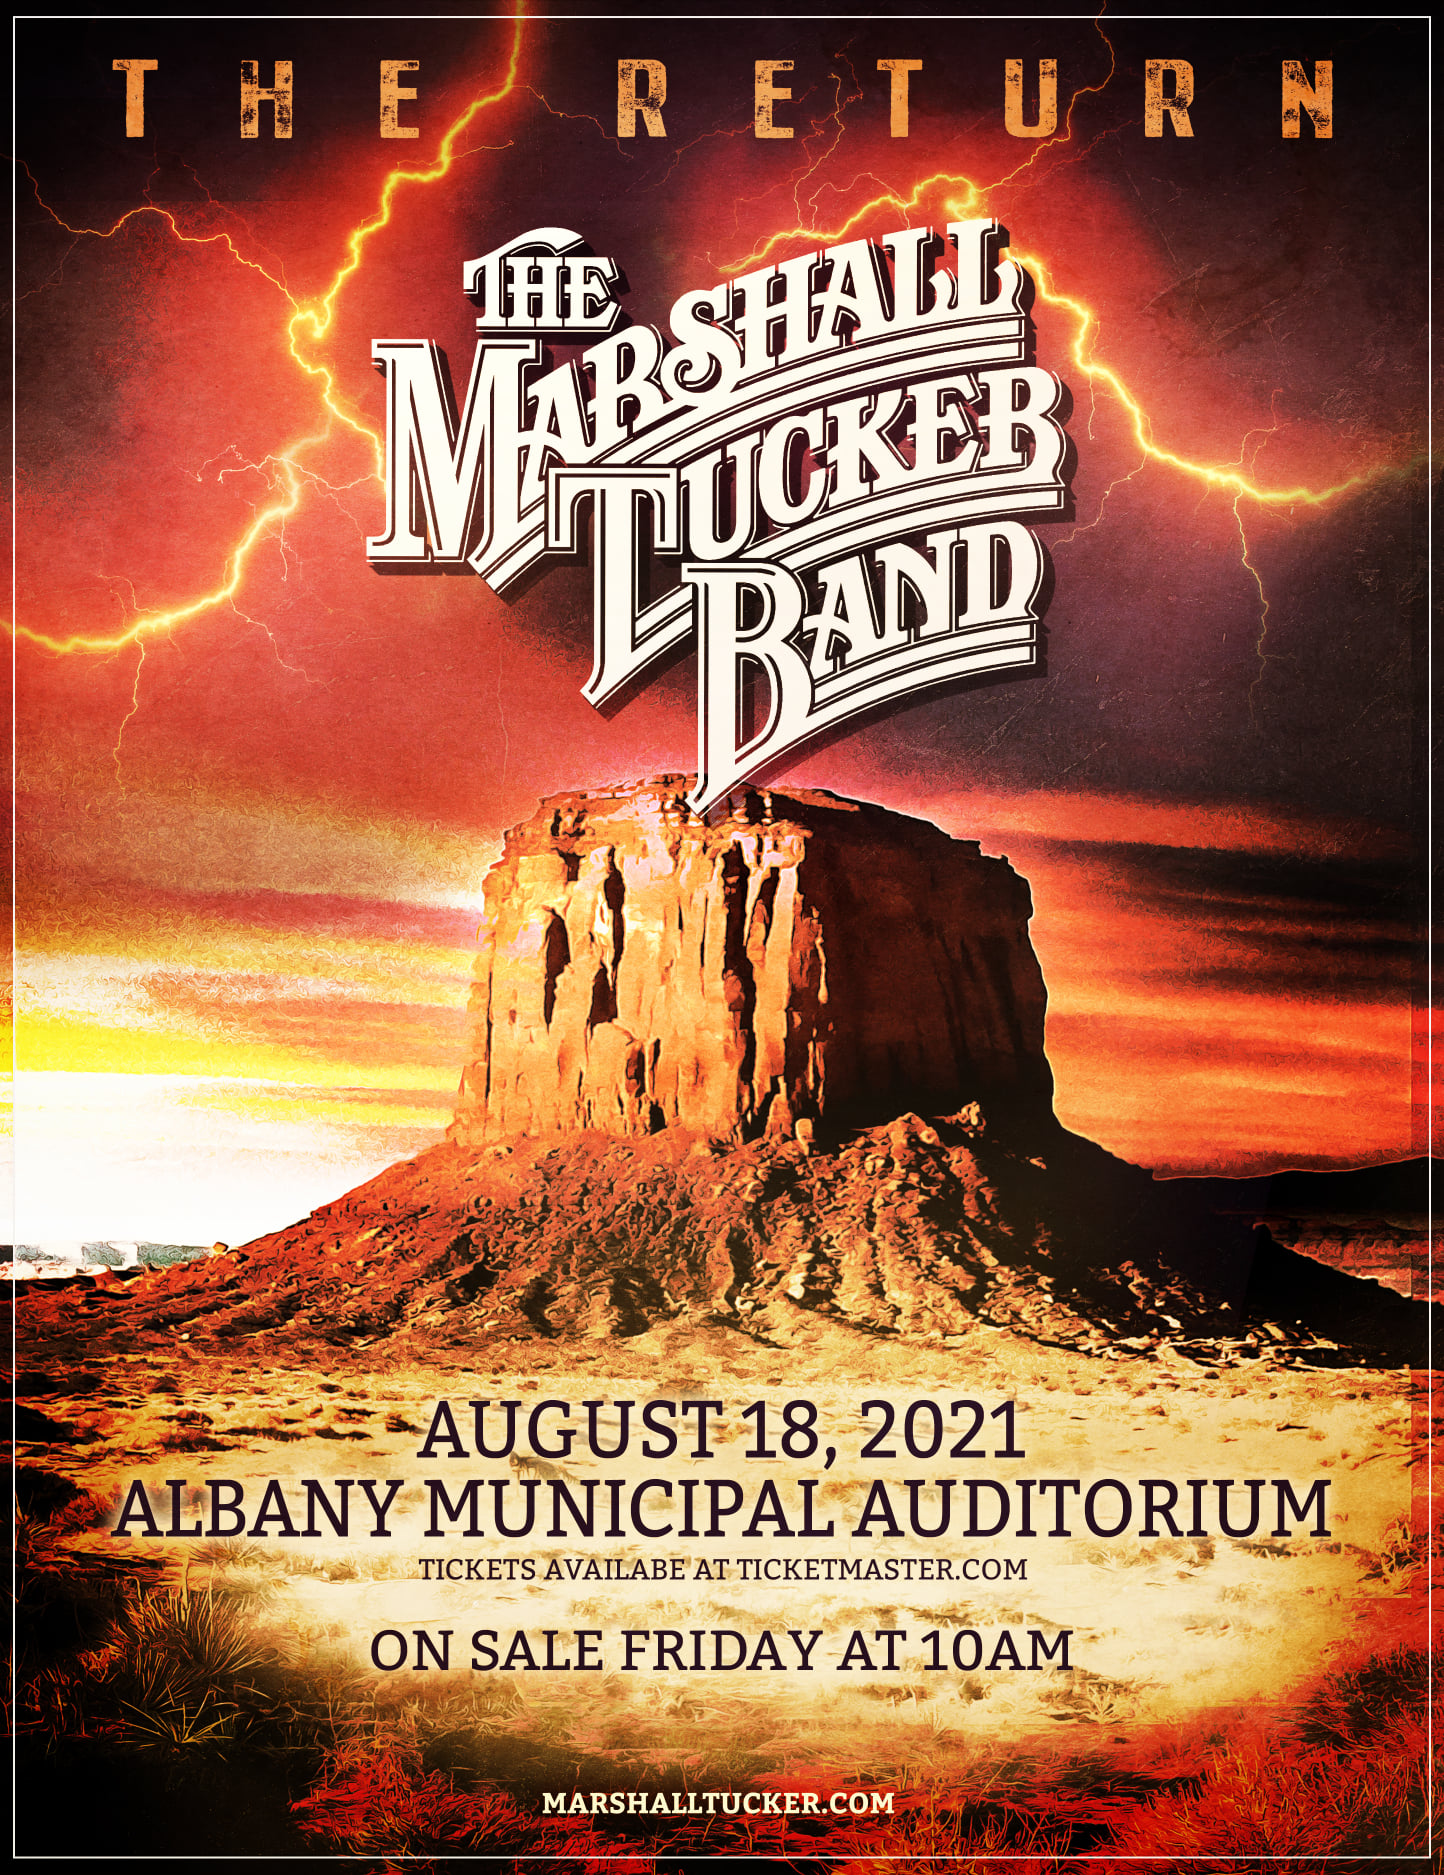 The Marshall Tucker Band Returns To Albany Municipal Auditorium In Albany GA On August 18